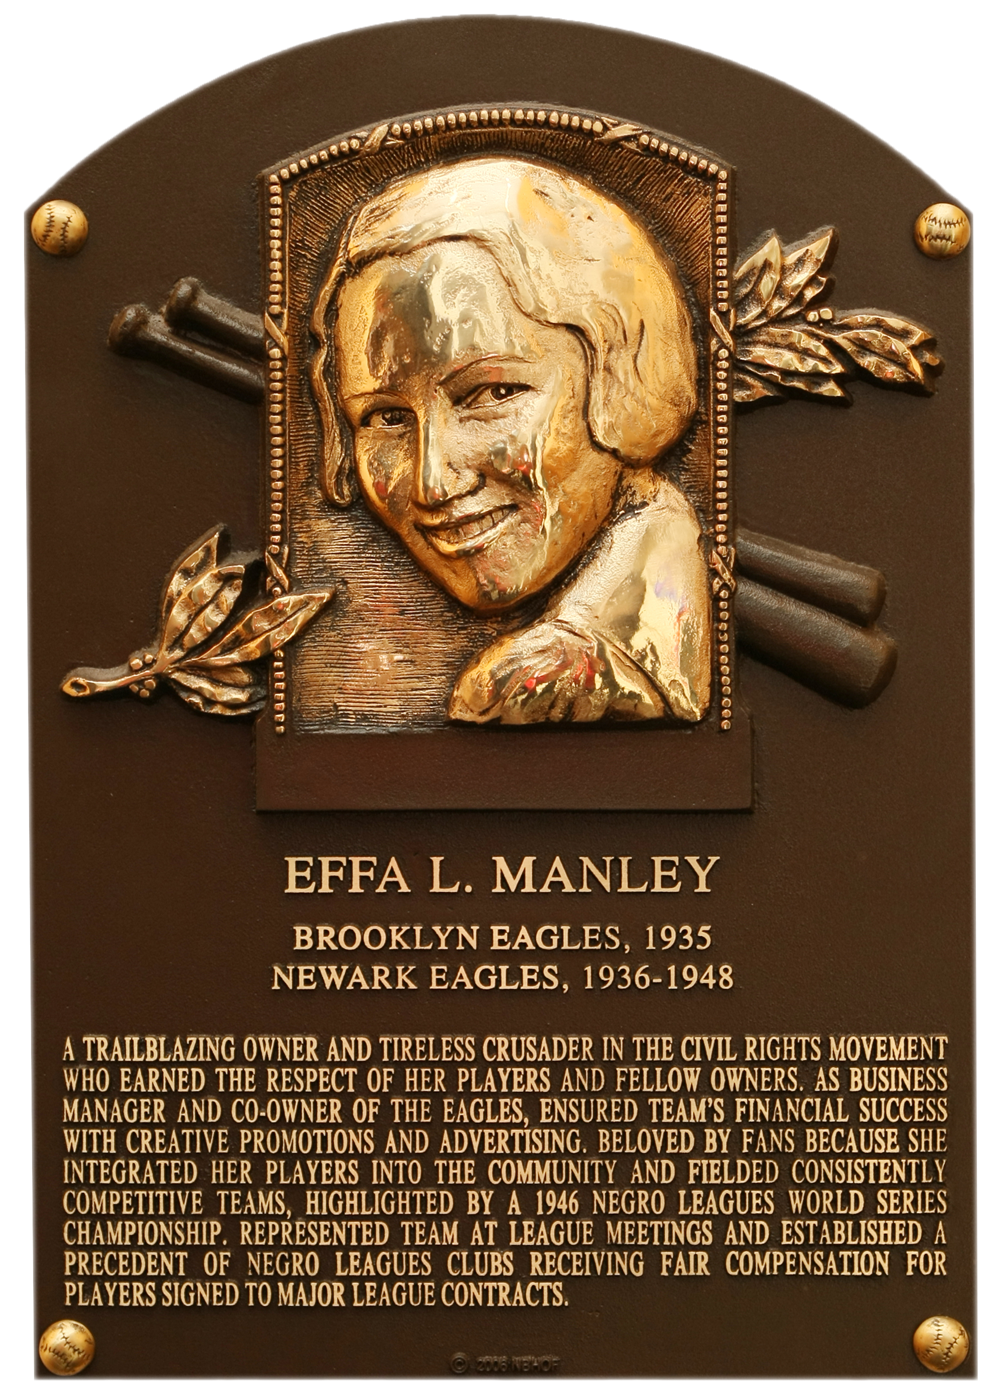 http://baseballhall.org/sites/default/files/Manley%20Effa%20Plaque_NBL_0.png